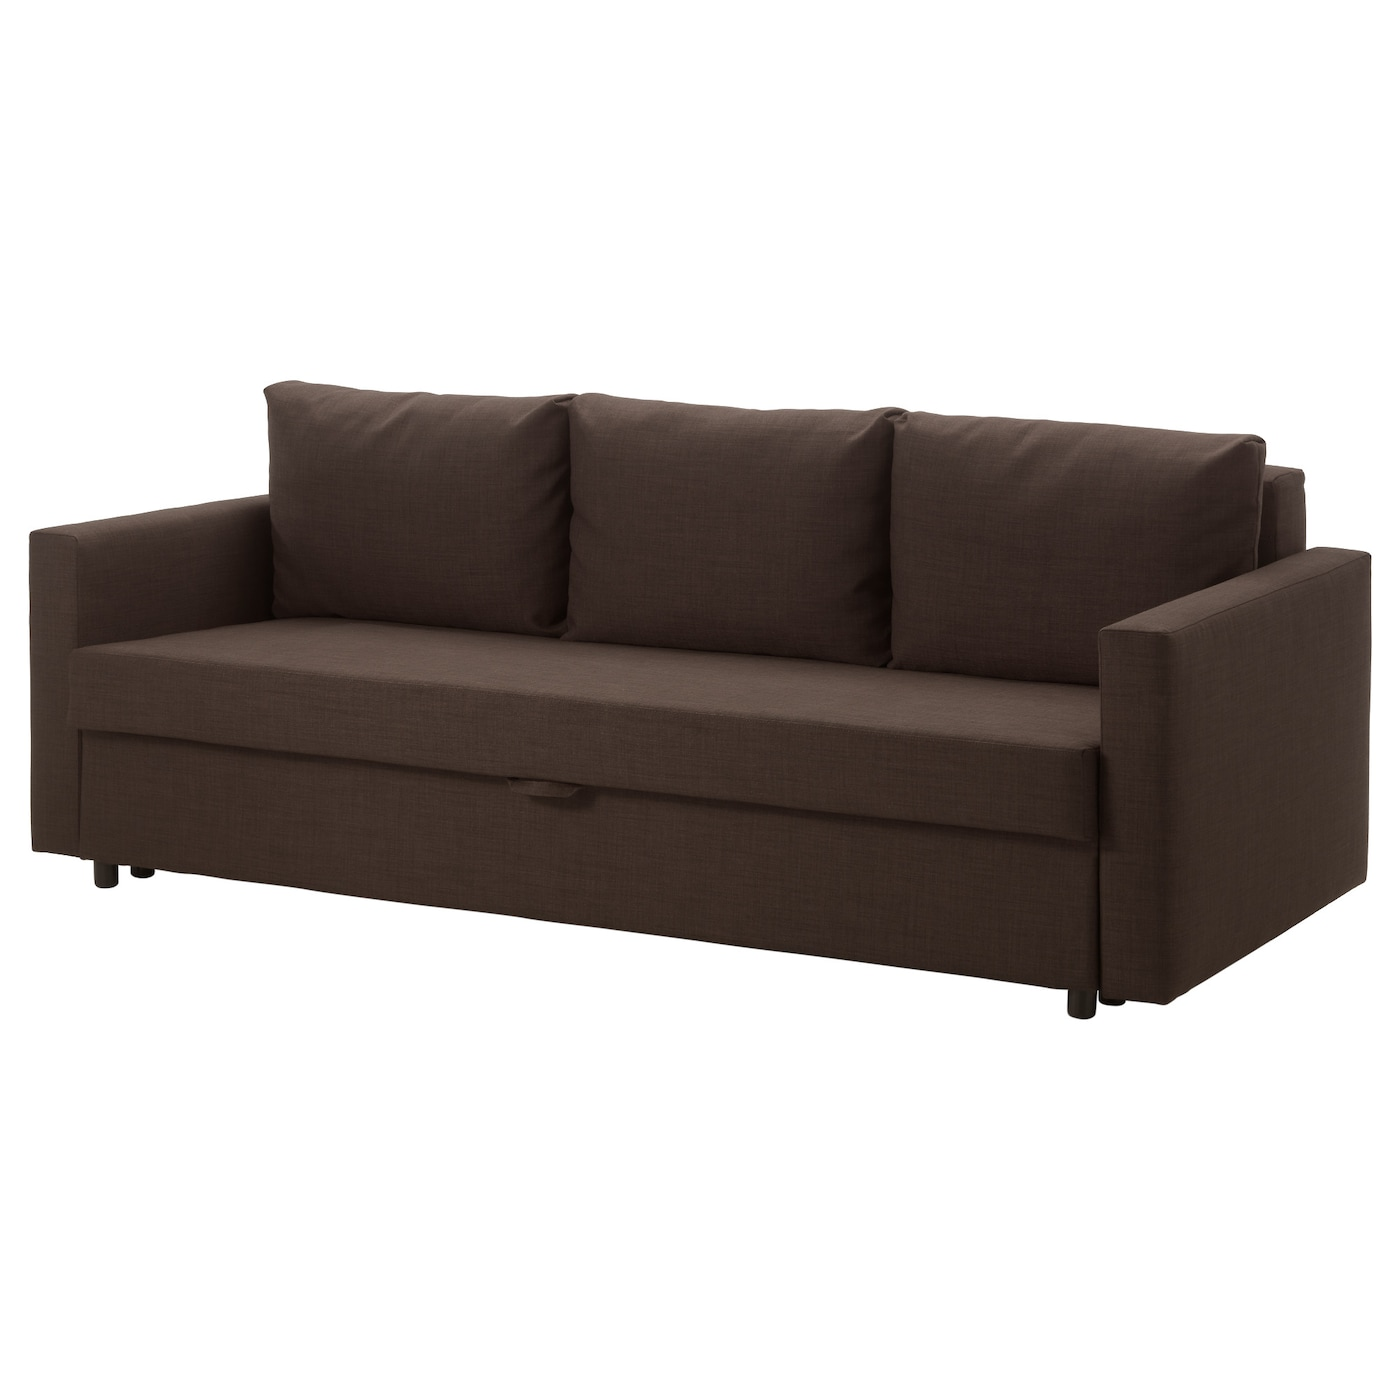 Friheten three seat sofa bed skiftebo brown ikea Ikea divan beds